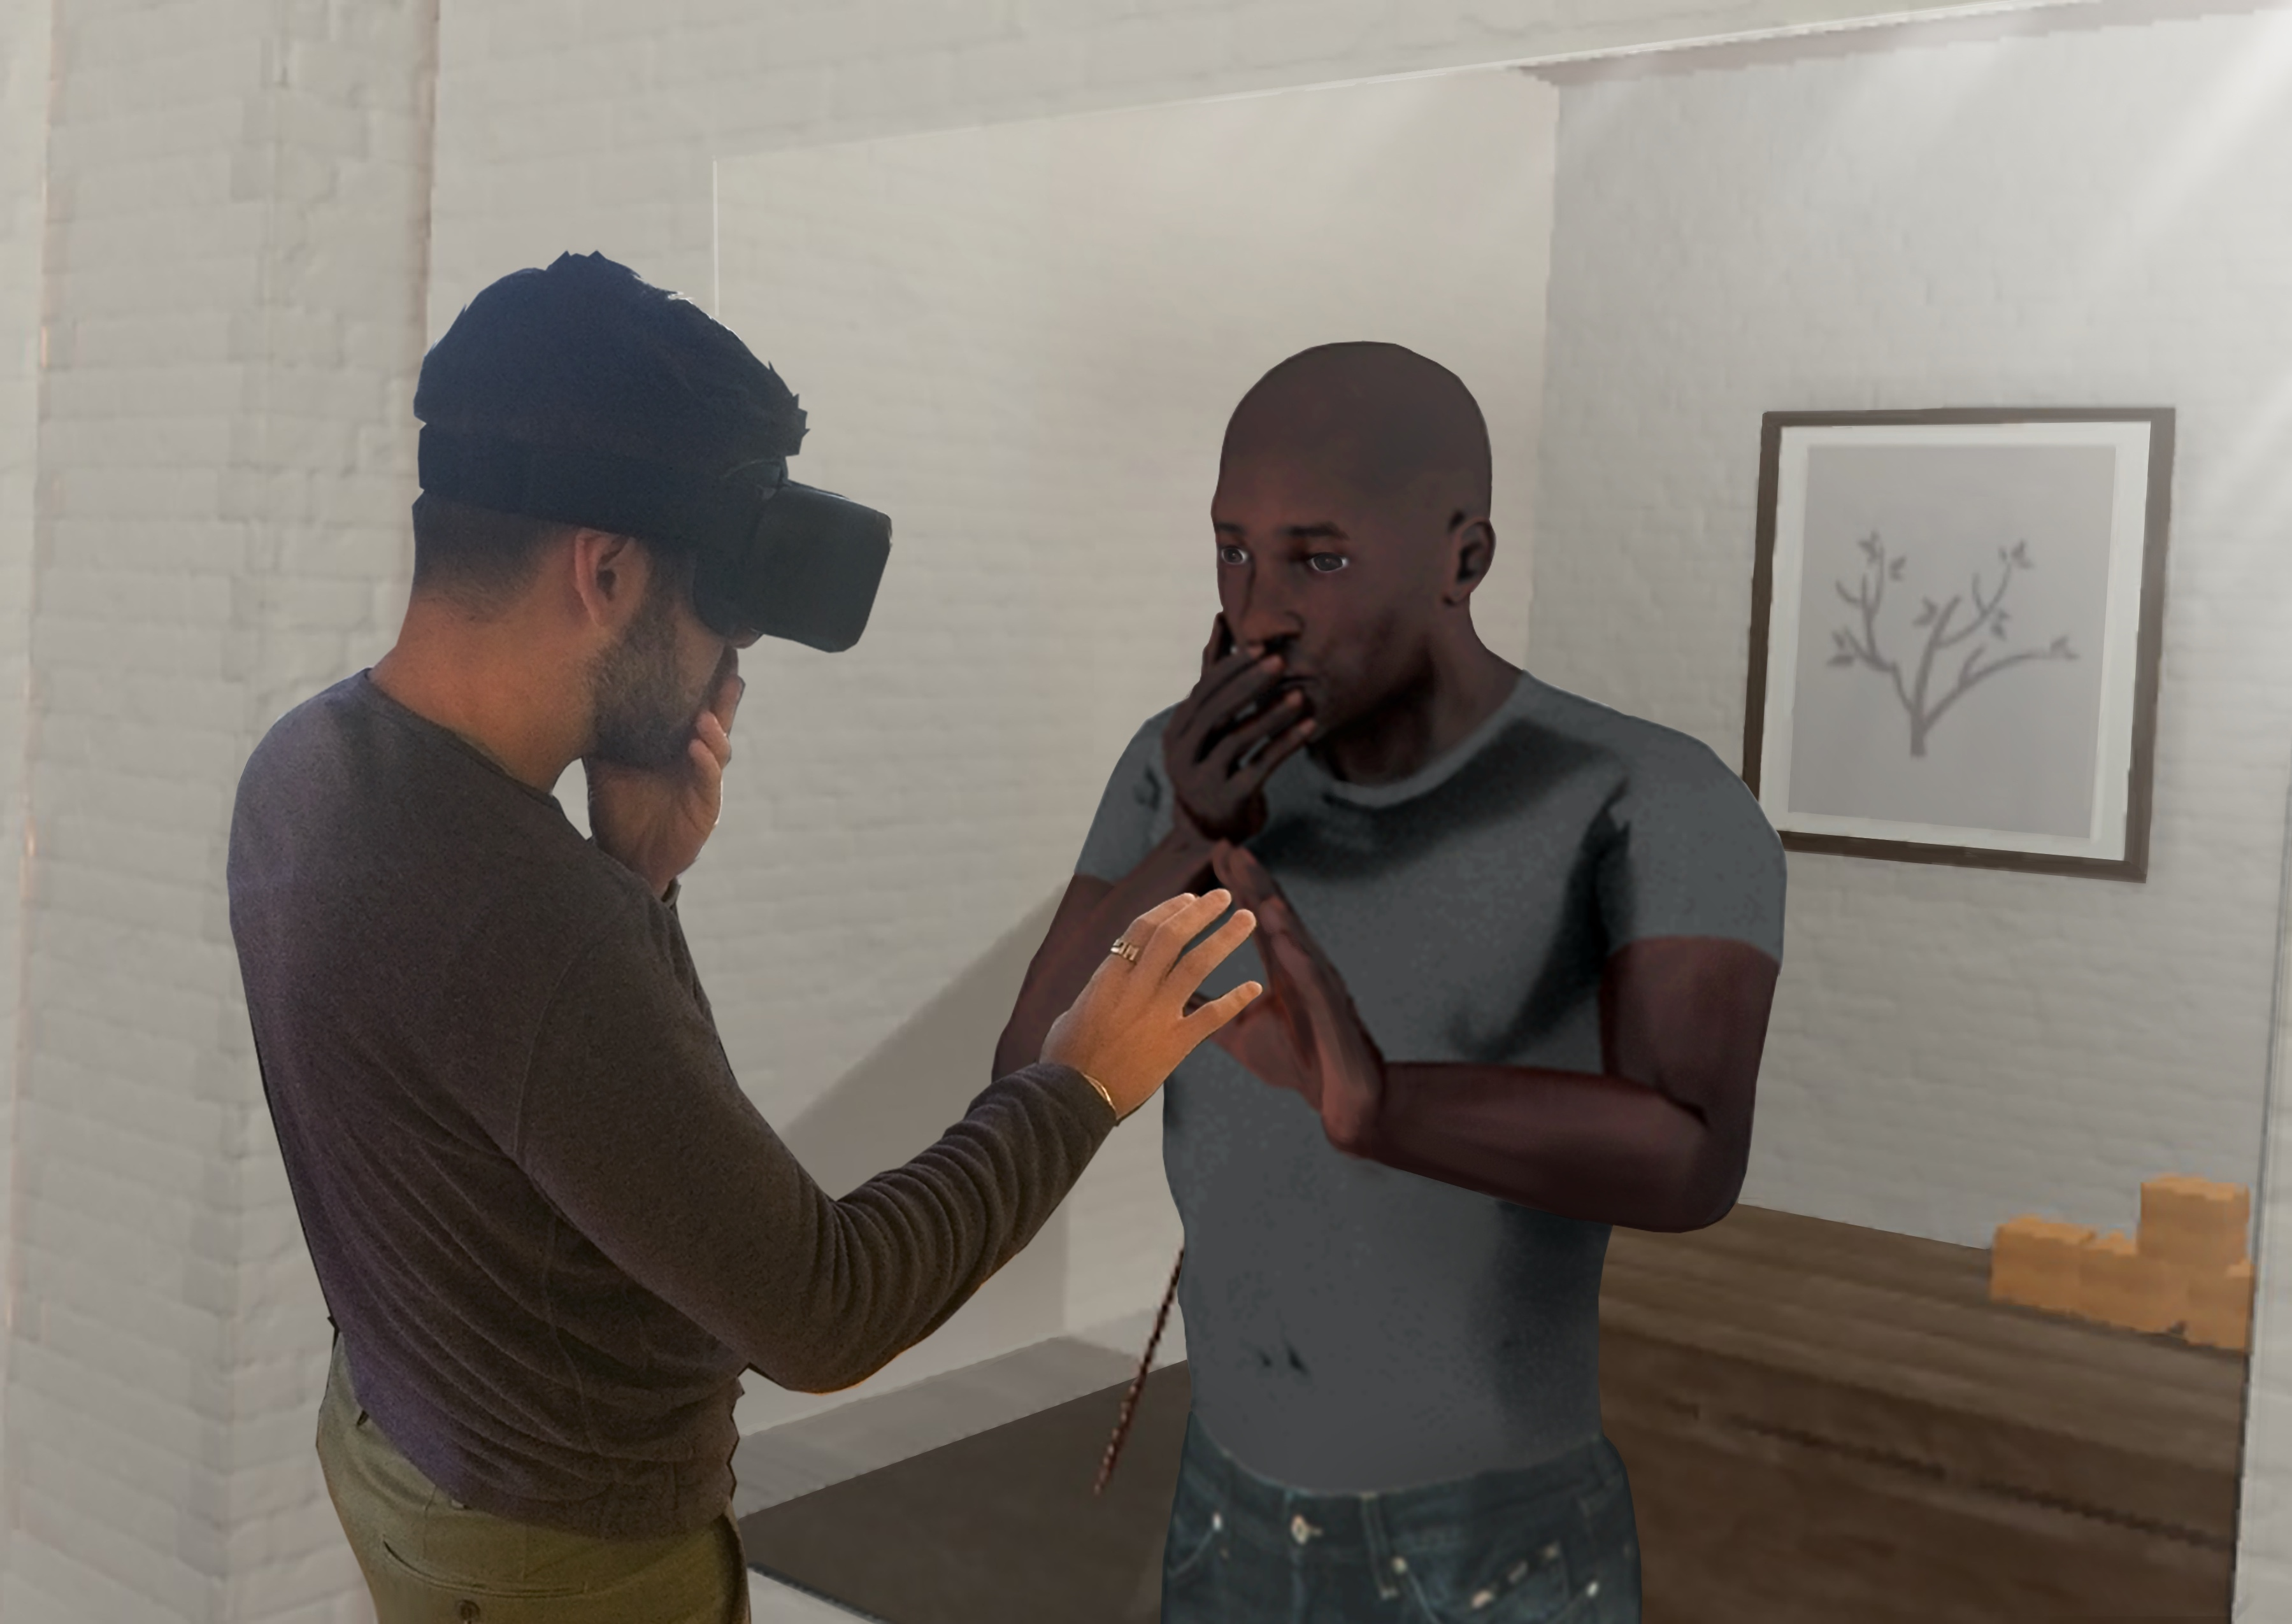 A virtual reality user looks in a virtual mirror and sees himself as a physically different person in a VR program, designed by startup company SPACES, that has the potential to reduce the impact of implicit bias, the measurable, objective attitudes and stereotypes that everyone carries. SPACES introduced the new implicit bias VR program today (Oct. 10, 2016). SPACES has created the implicit bias VR program with academic and scientific research, law-enforcement and corporate training in mind. (Photo: Business Wire)